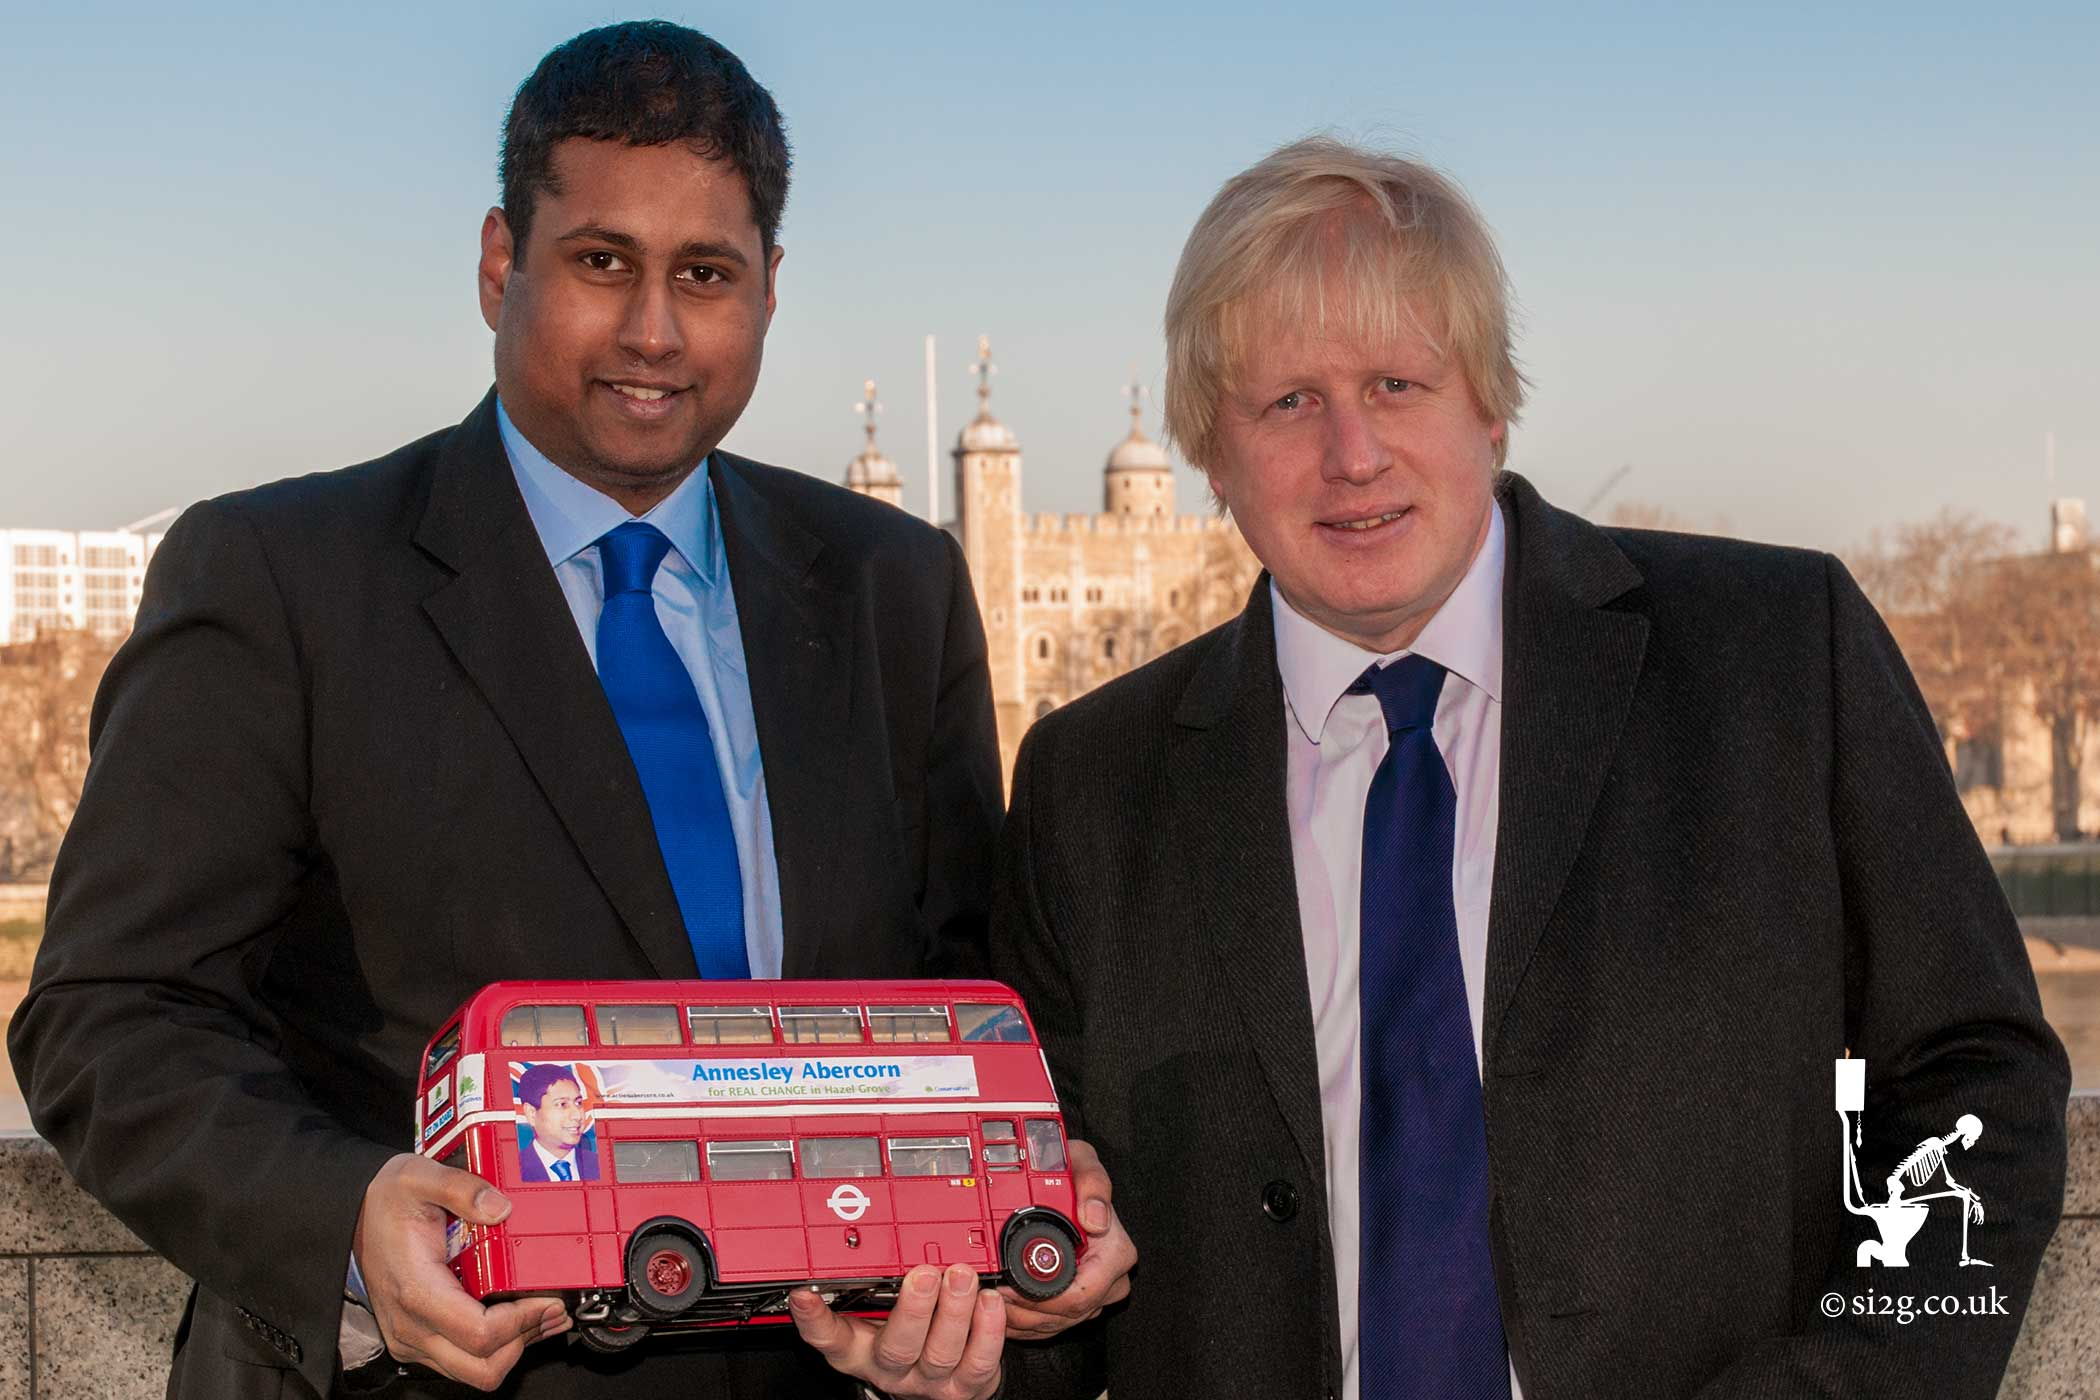 Boris Johnson Meets Annesley Abercorn - Used in campaign editorial by Annesley Abercorn.  Boris Johnson discussed the use of a bus in constituent campaigning.